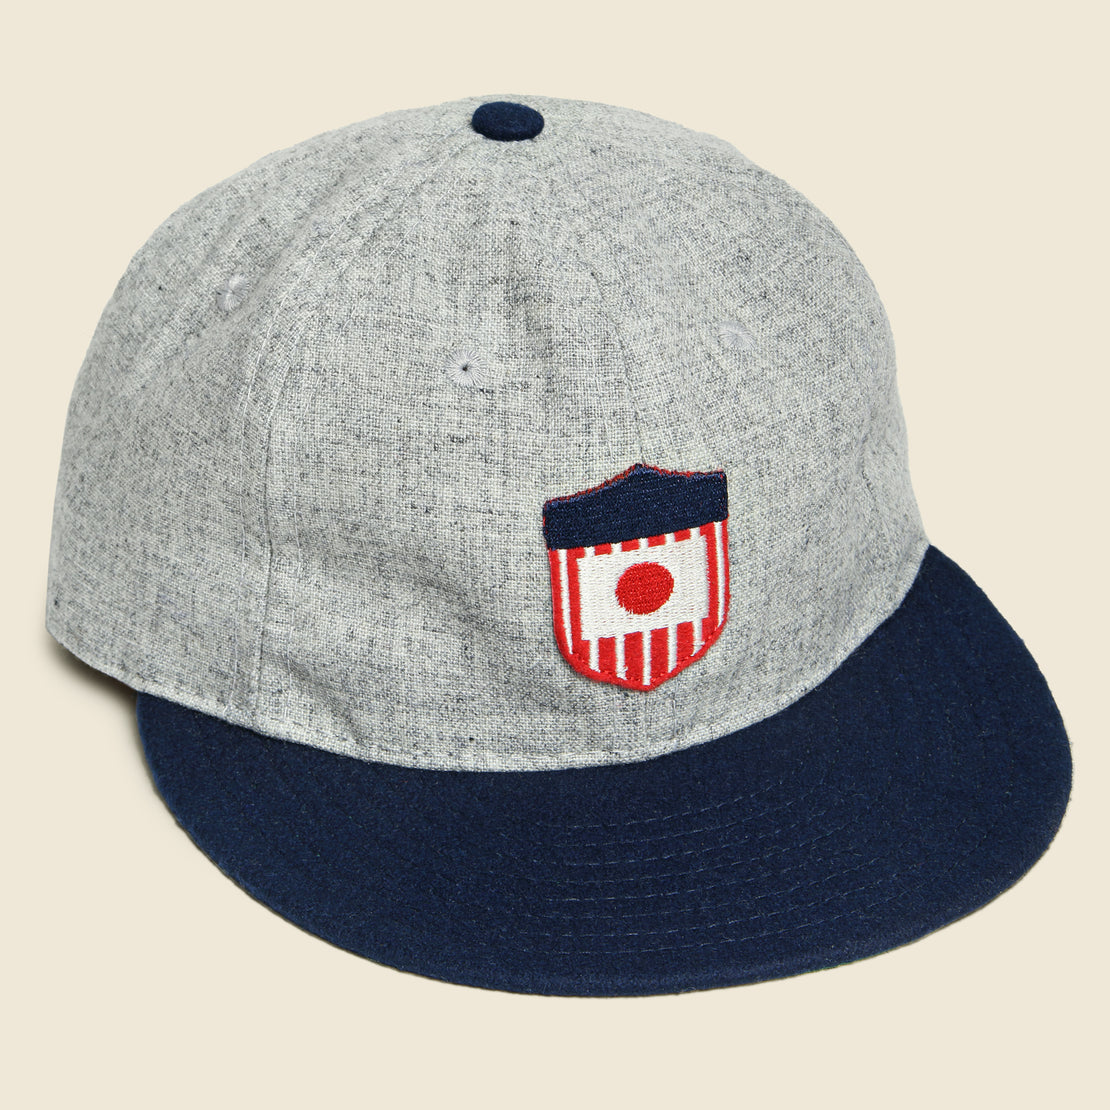 Ebbets Field Flannels U.S. Tour of Japan Hat - Grey